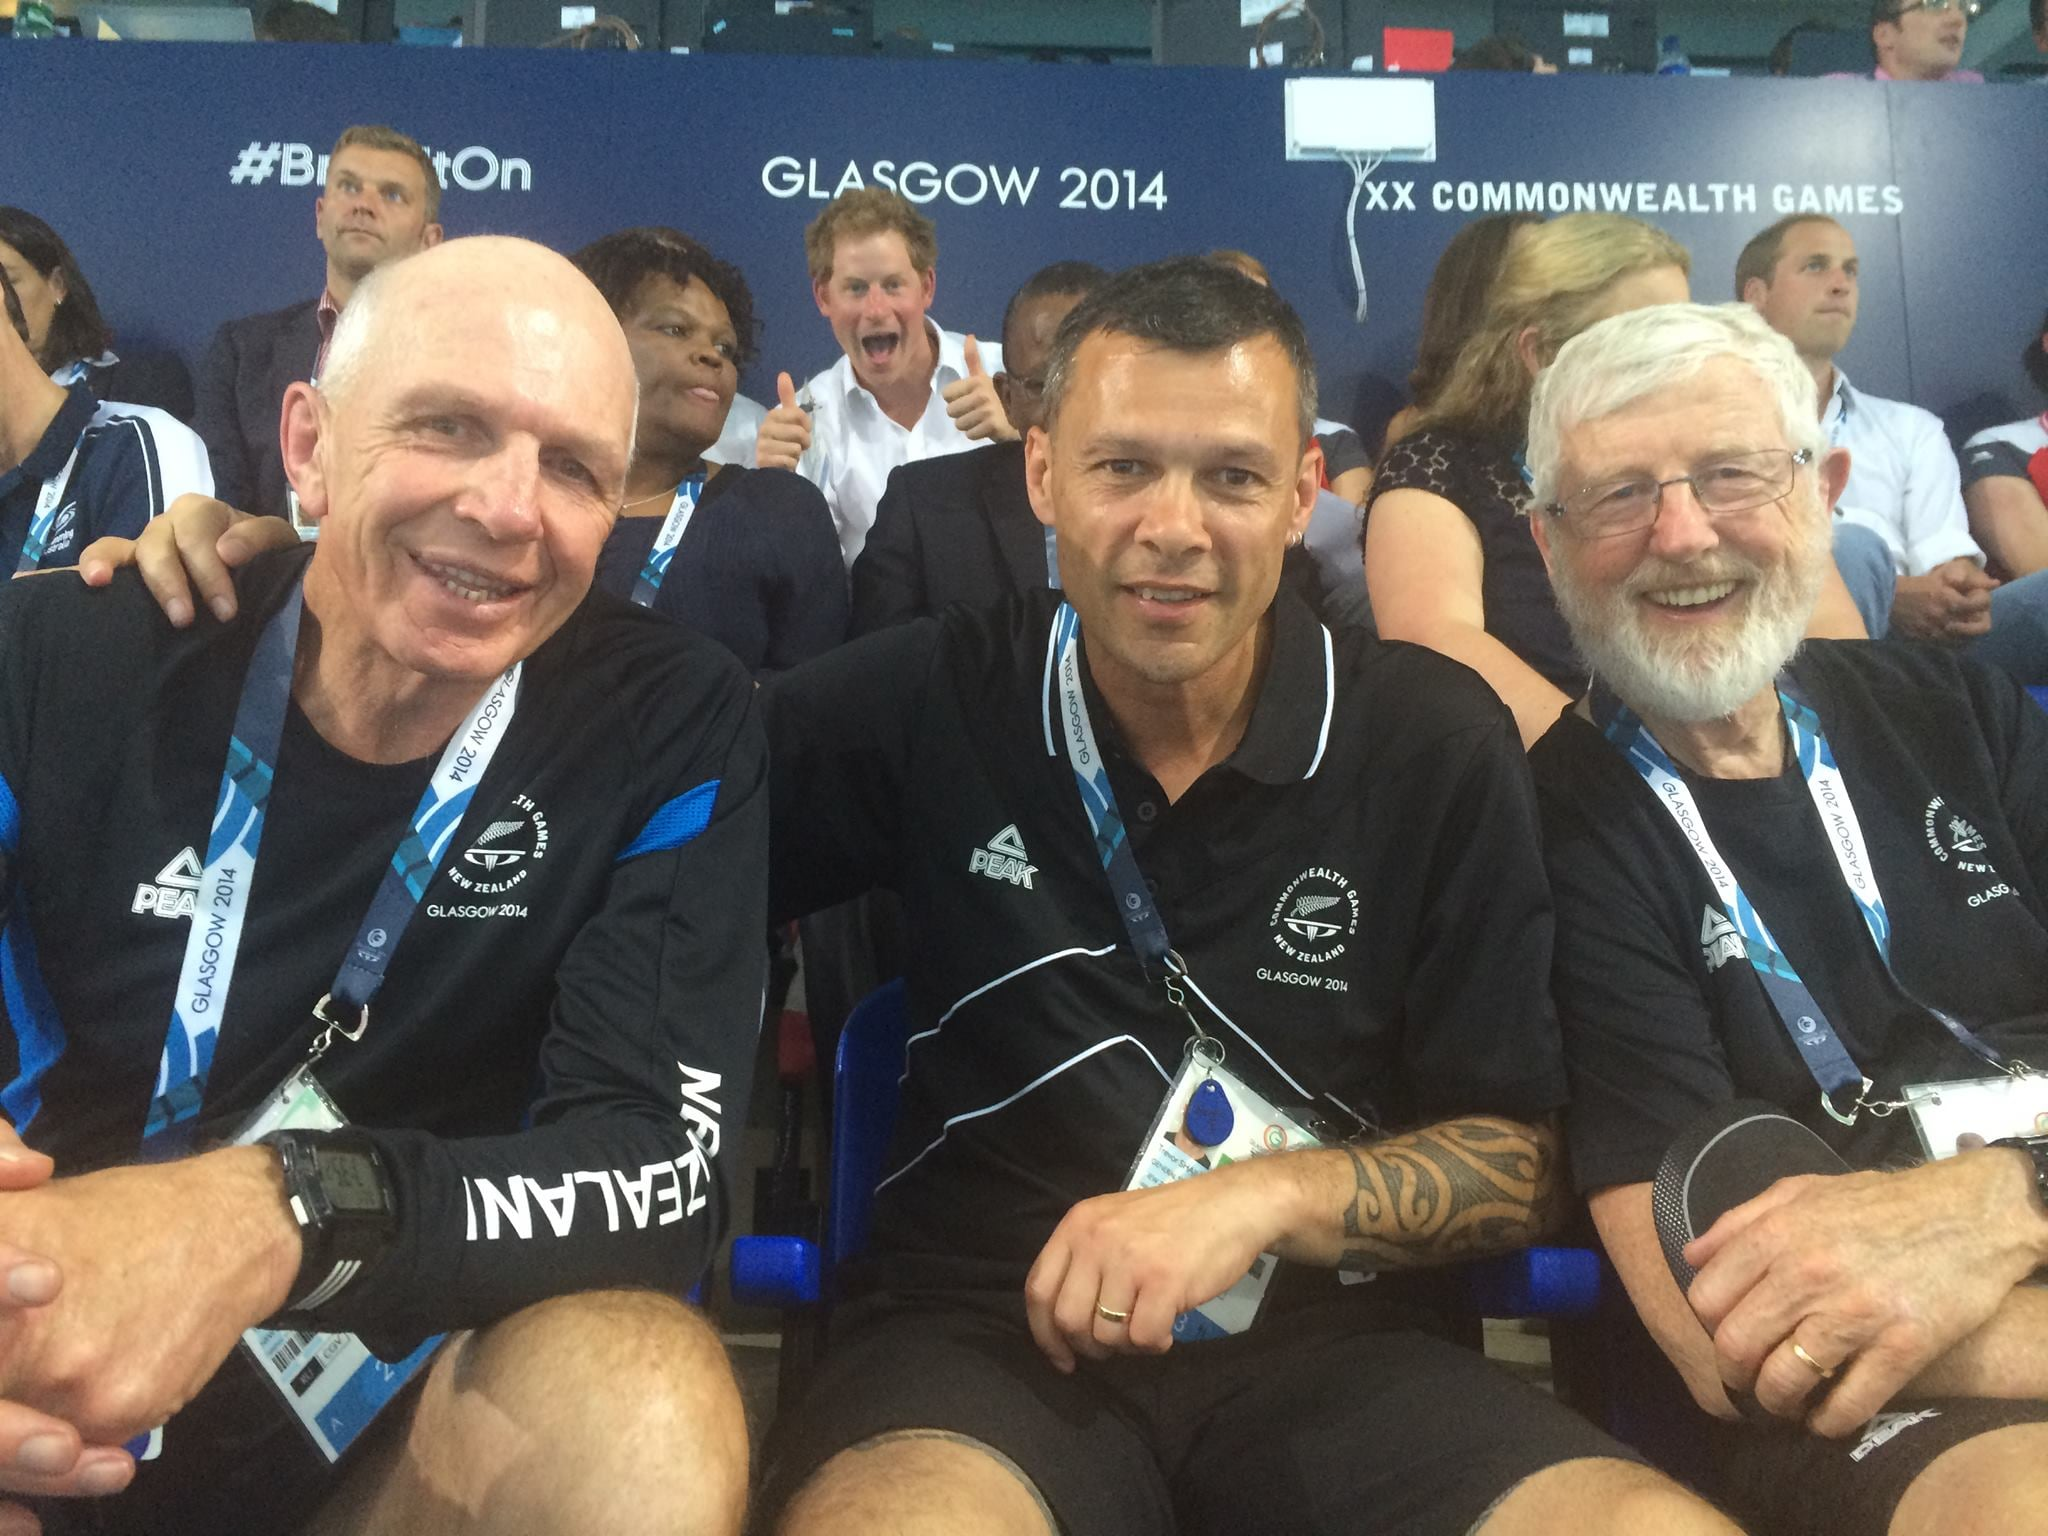 Prince Harry snuck up on boxer Trevor Shailer (center), rugby star Gordon Tietjens, and a friend when they tried to take a snap of themselves at the Commonwealth Games. Source: Facebook user Trevor Shailer